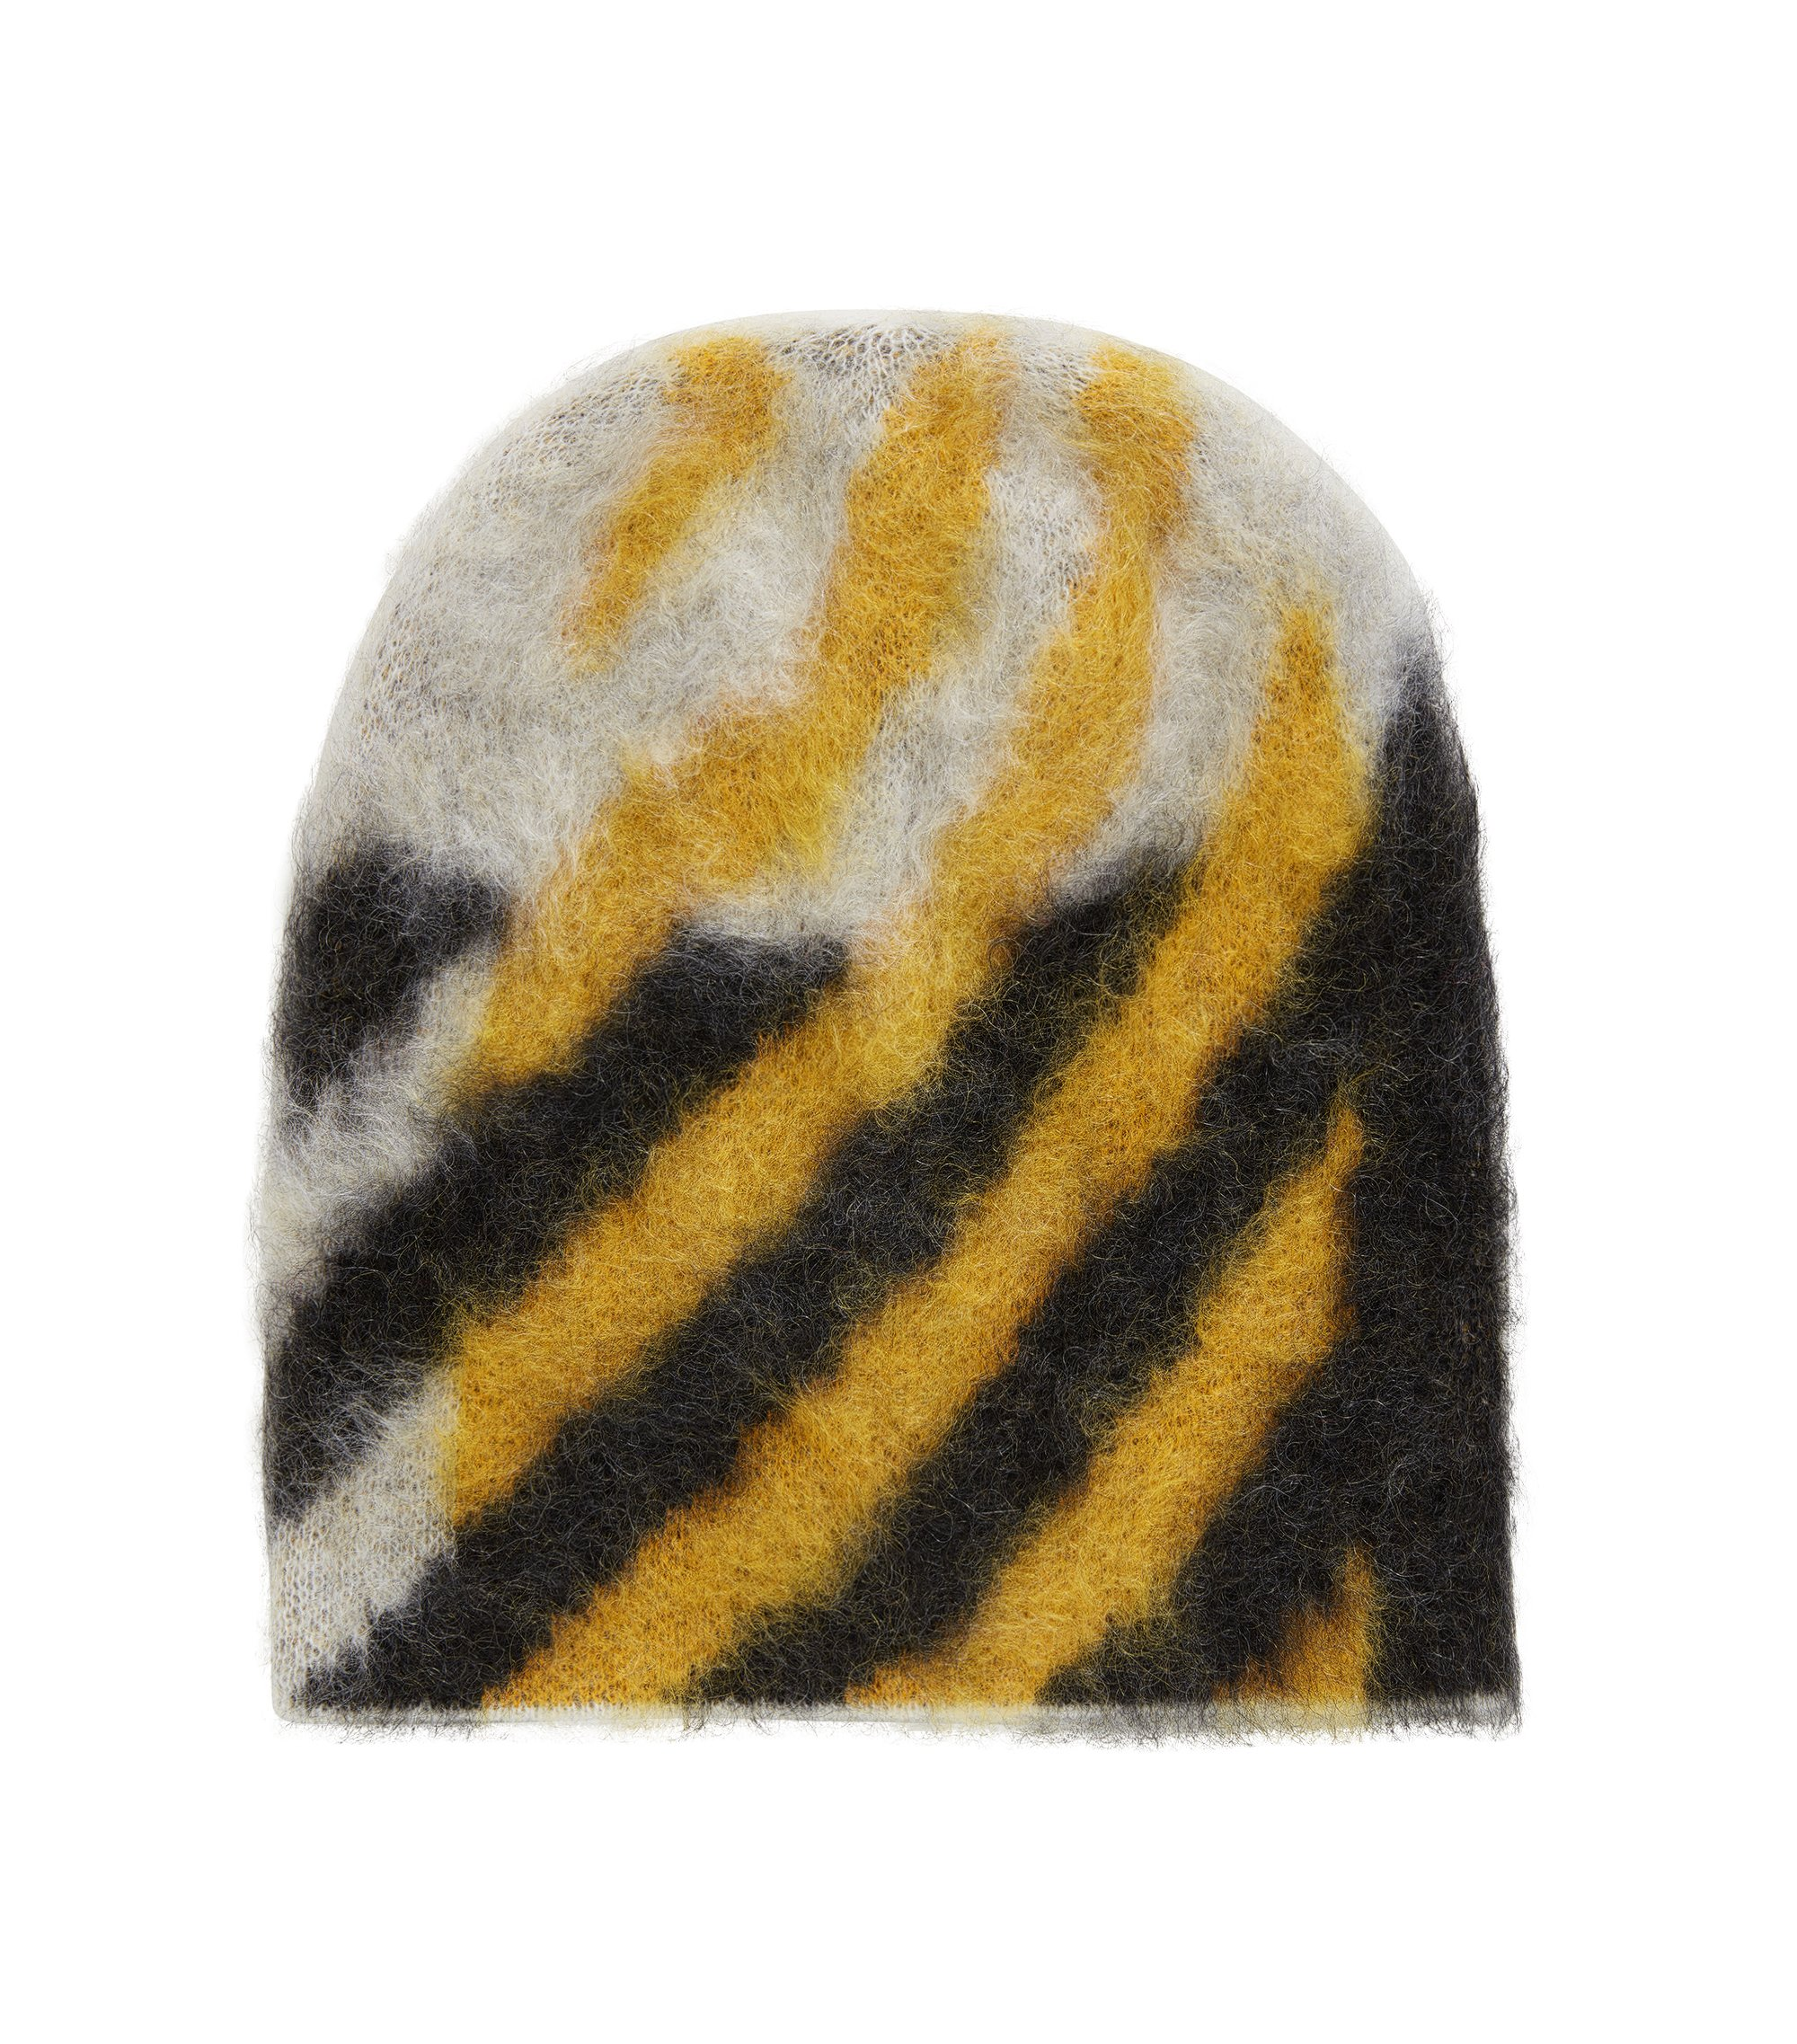 Textured wool-blend beanie hat with contrast pattern, Patterned